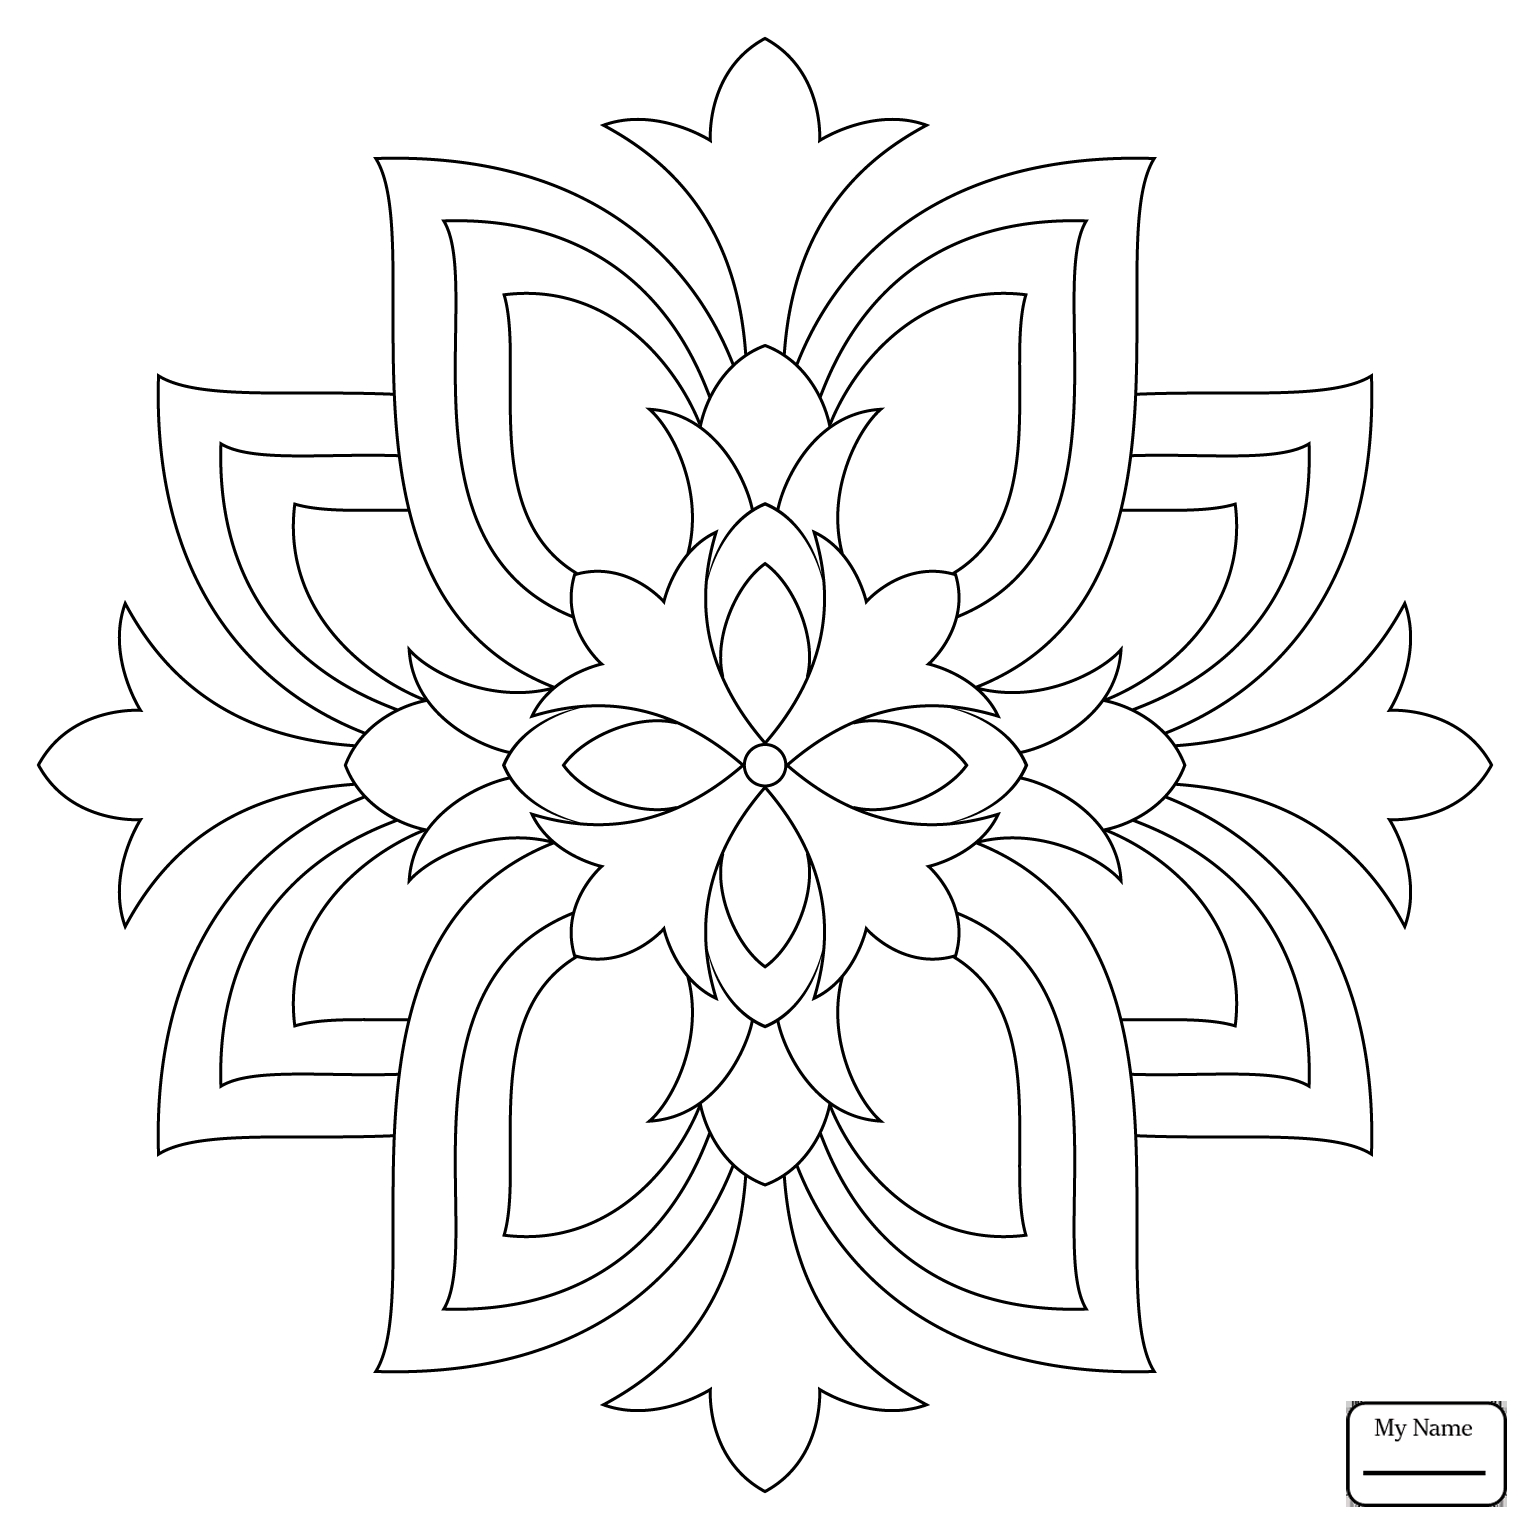 Easy Flower Mandala Coloring Pages at GetDrawings.com | Free ...